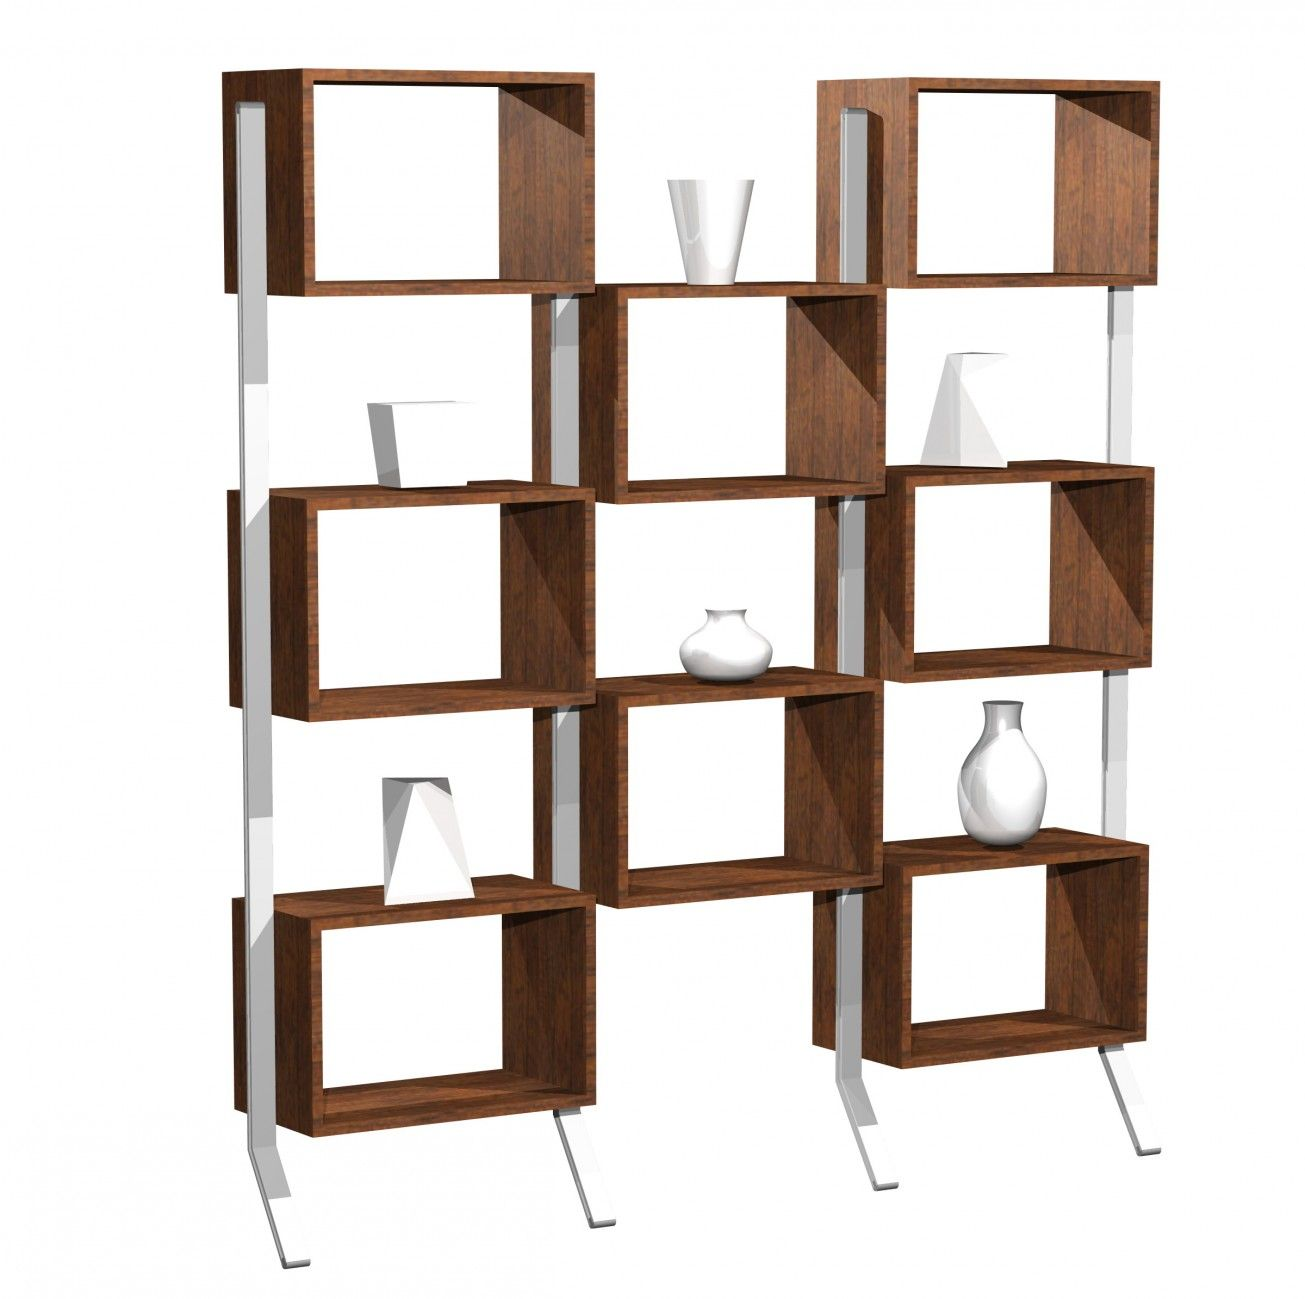 Remarkable Modular Shelving Units Design Terrific Shelves Furniture Ideas Stunning Wooden